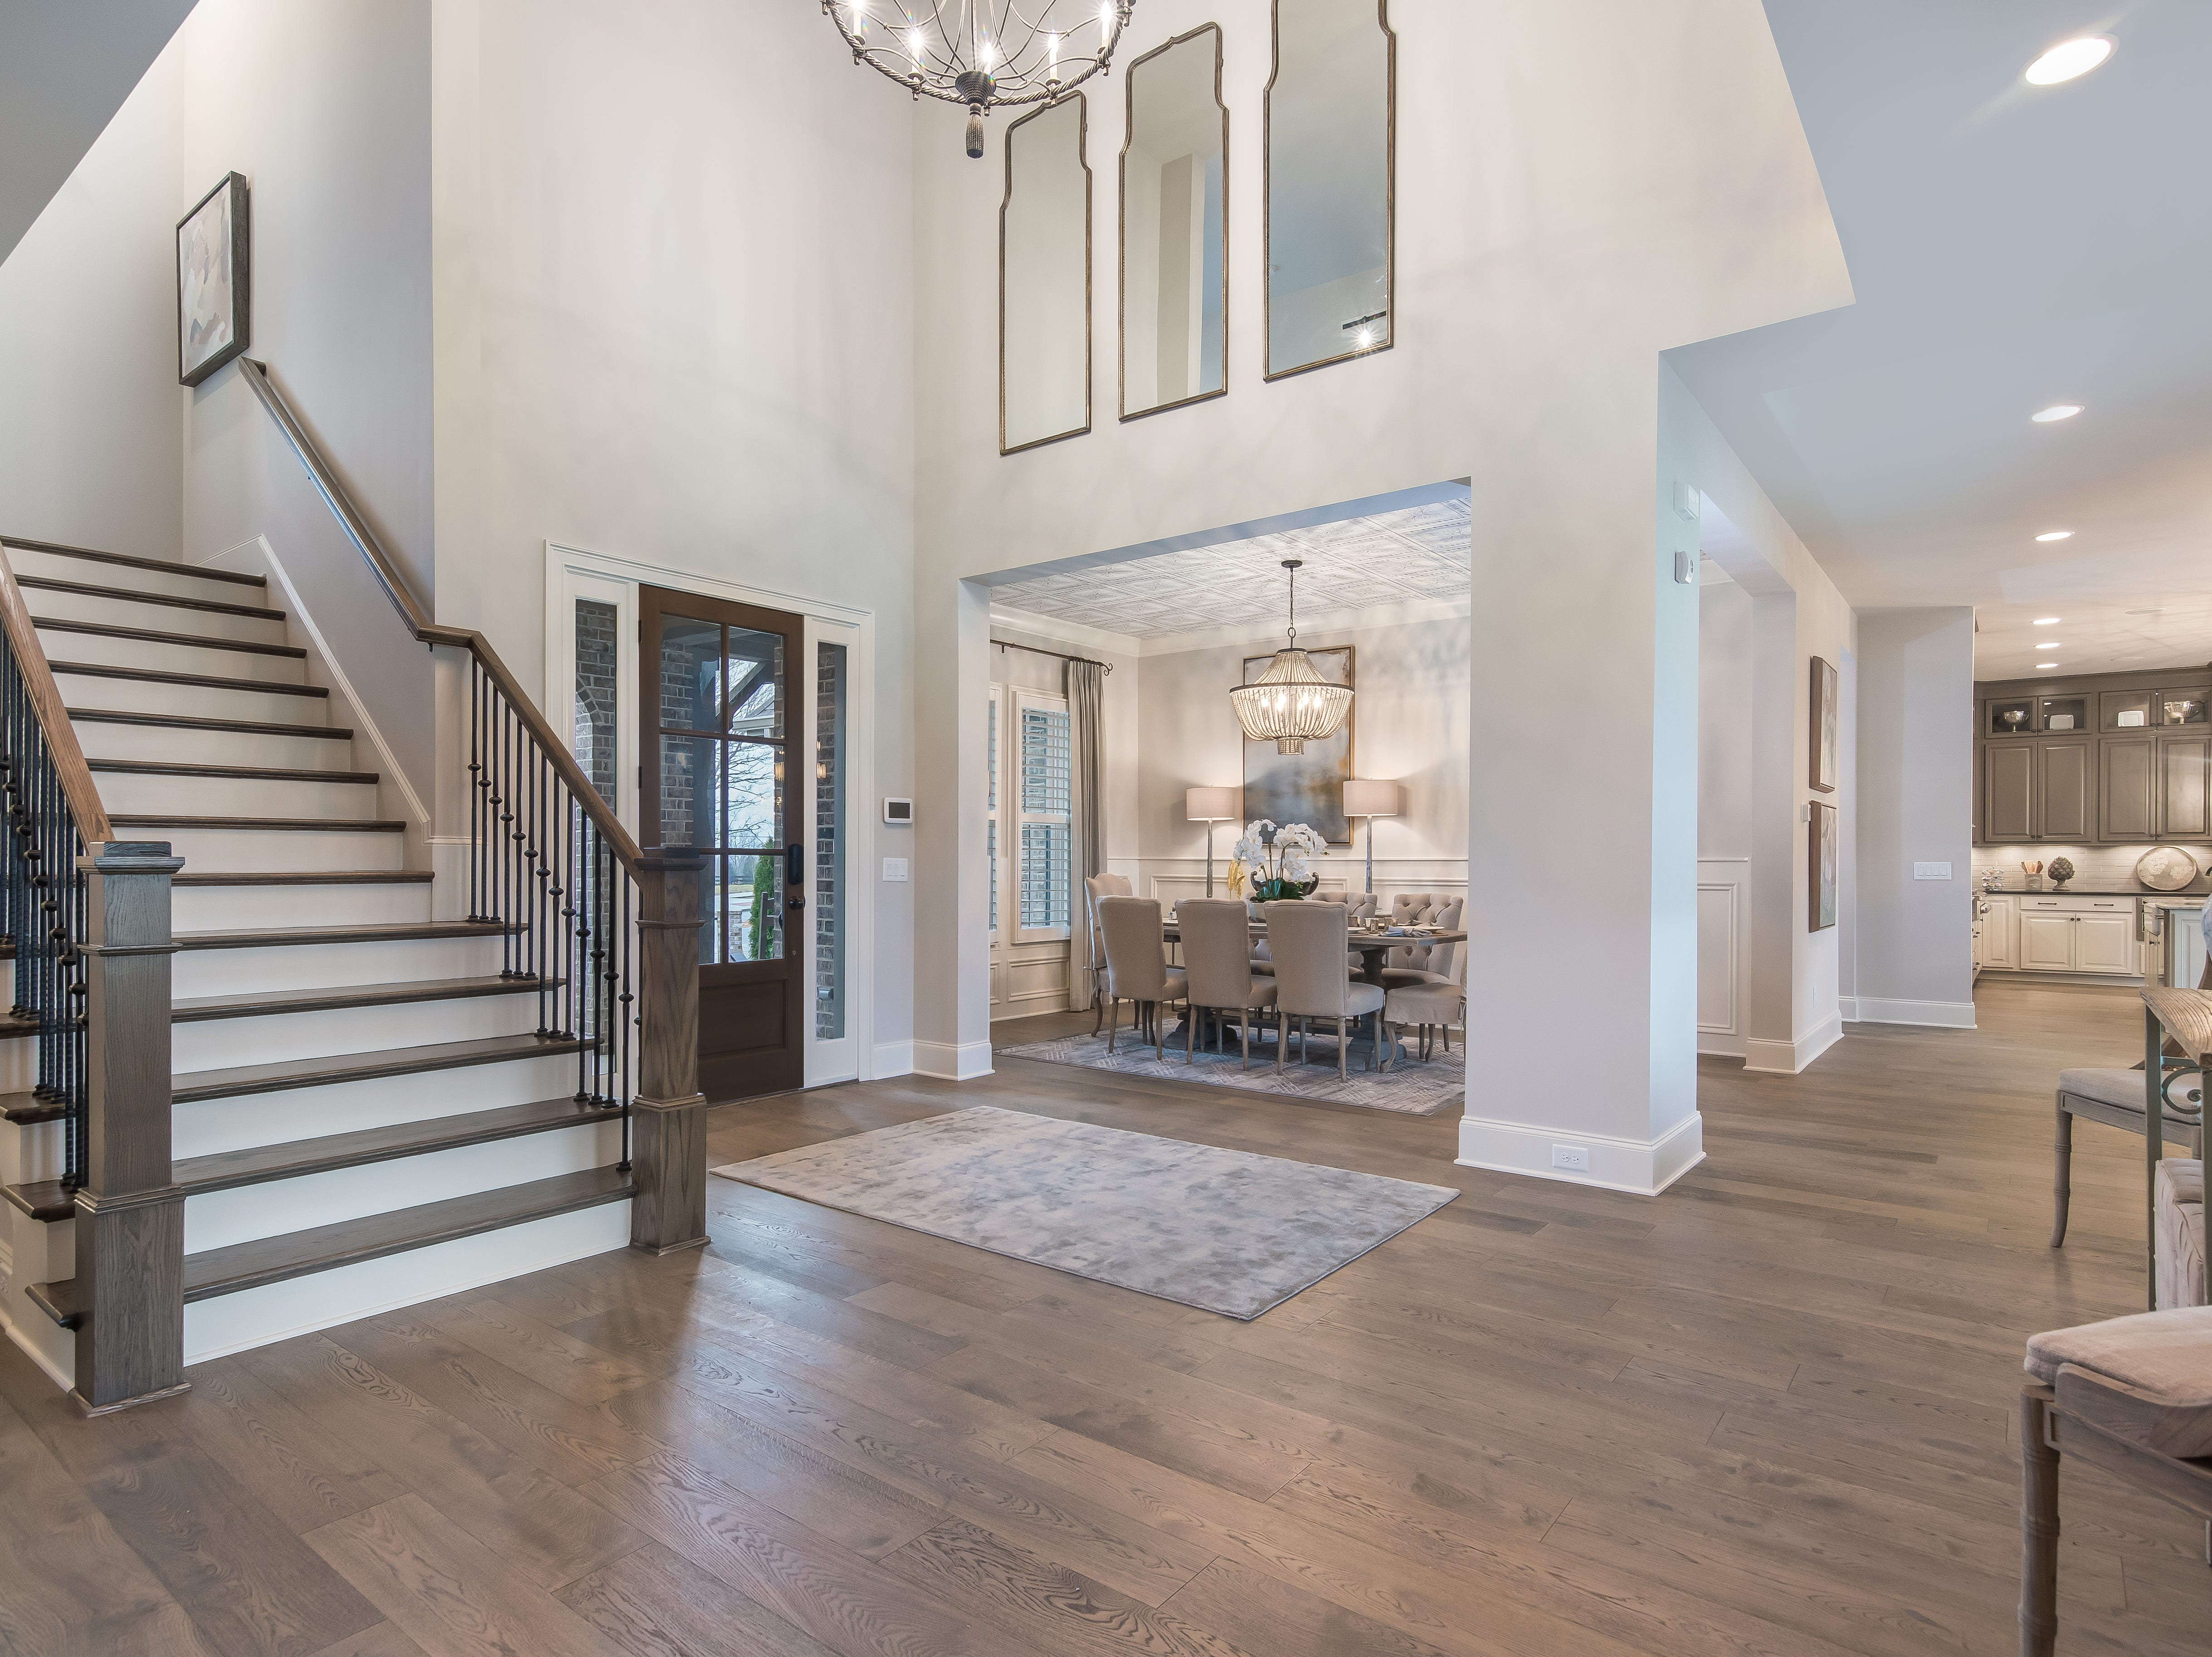 The model home is stocked with upgrades such as this commercial-grade hardwood flooring.